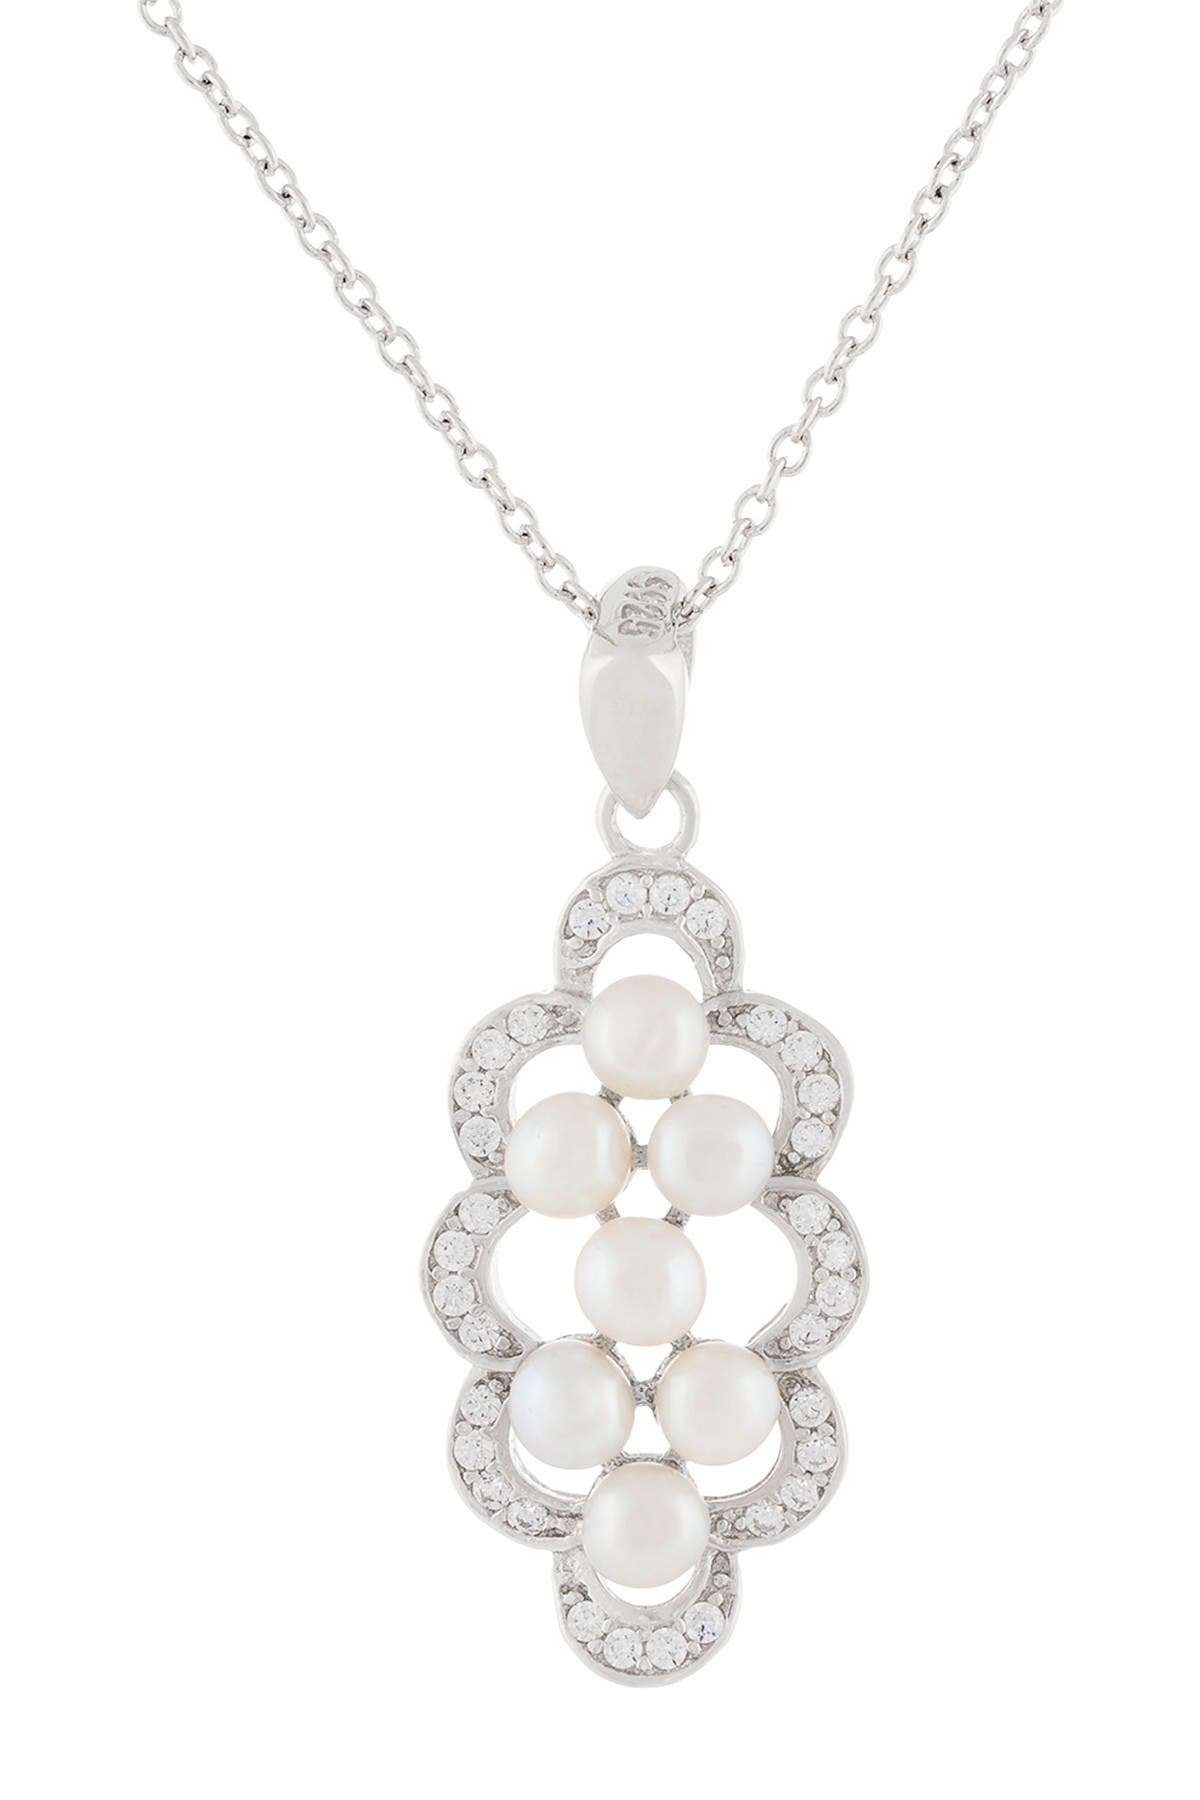 Image of Splendid Pearls Sterling Silver 3-4mm White Freshwater Pearl & CZ Pendant Necklace